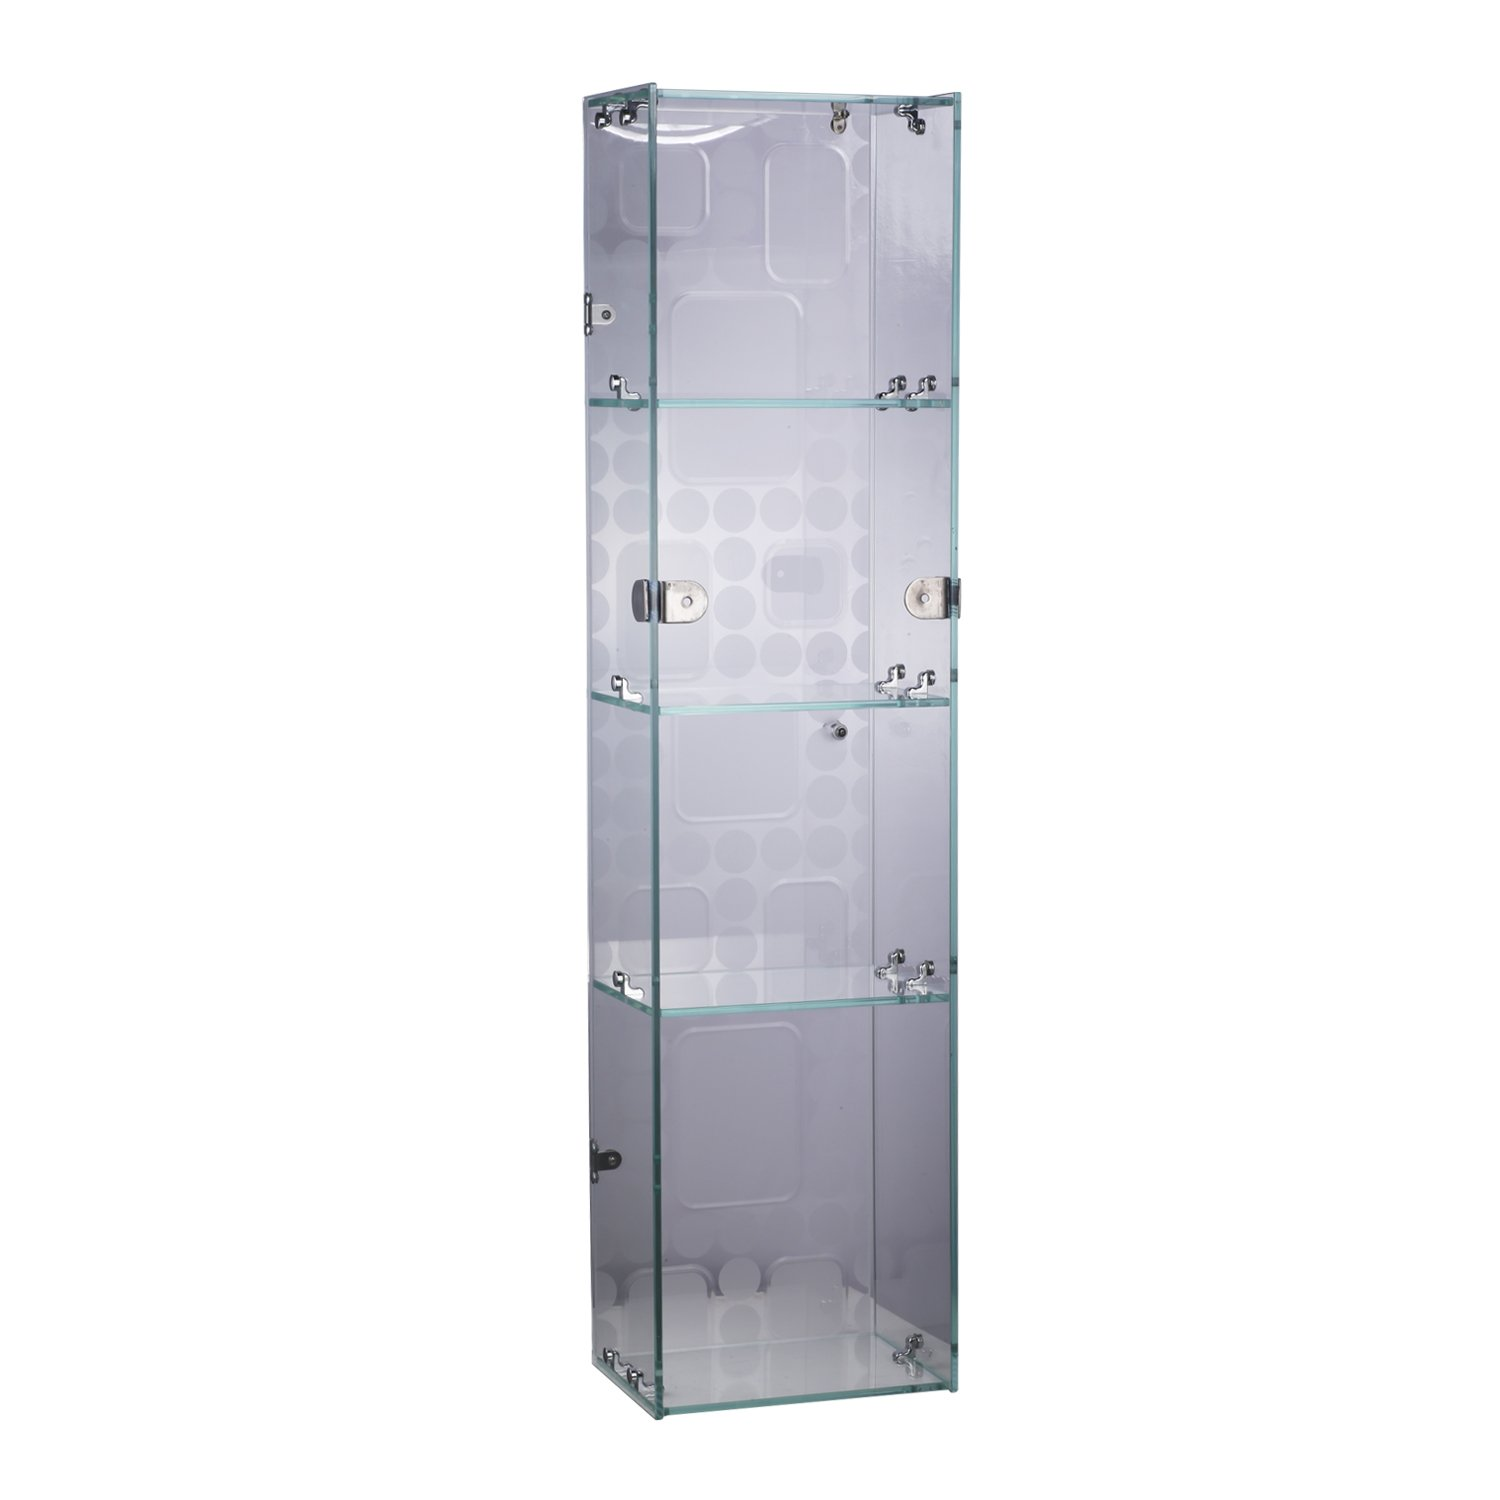 Awesome Homcom Stainless Steel 4 Tier Glass Storage Cabinet Wall Download Free Architecture Designs Scobabritishbridgeorg